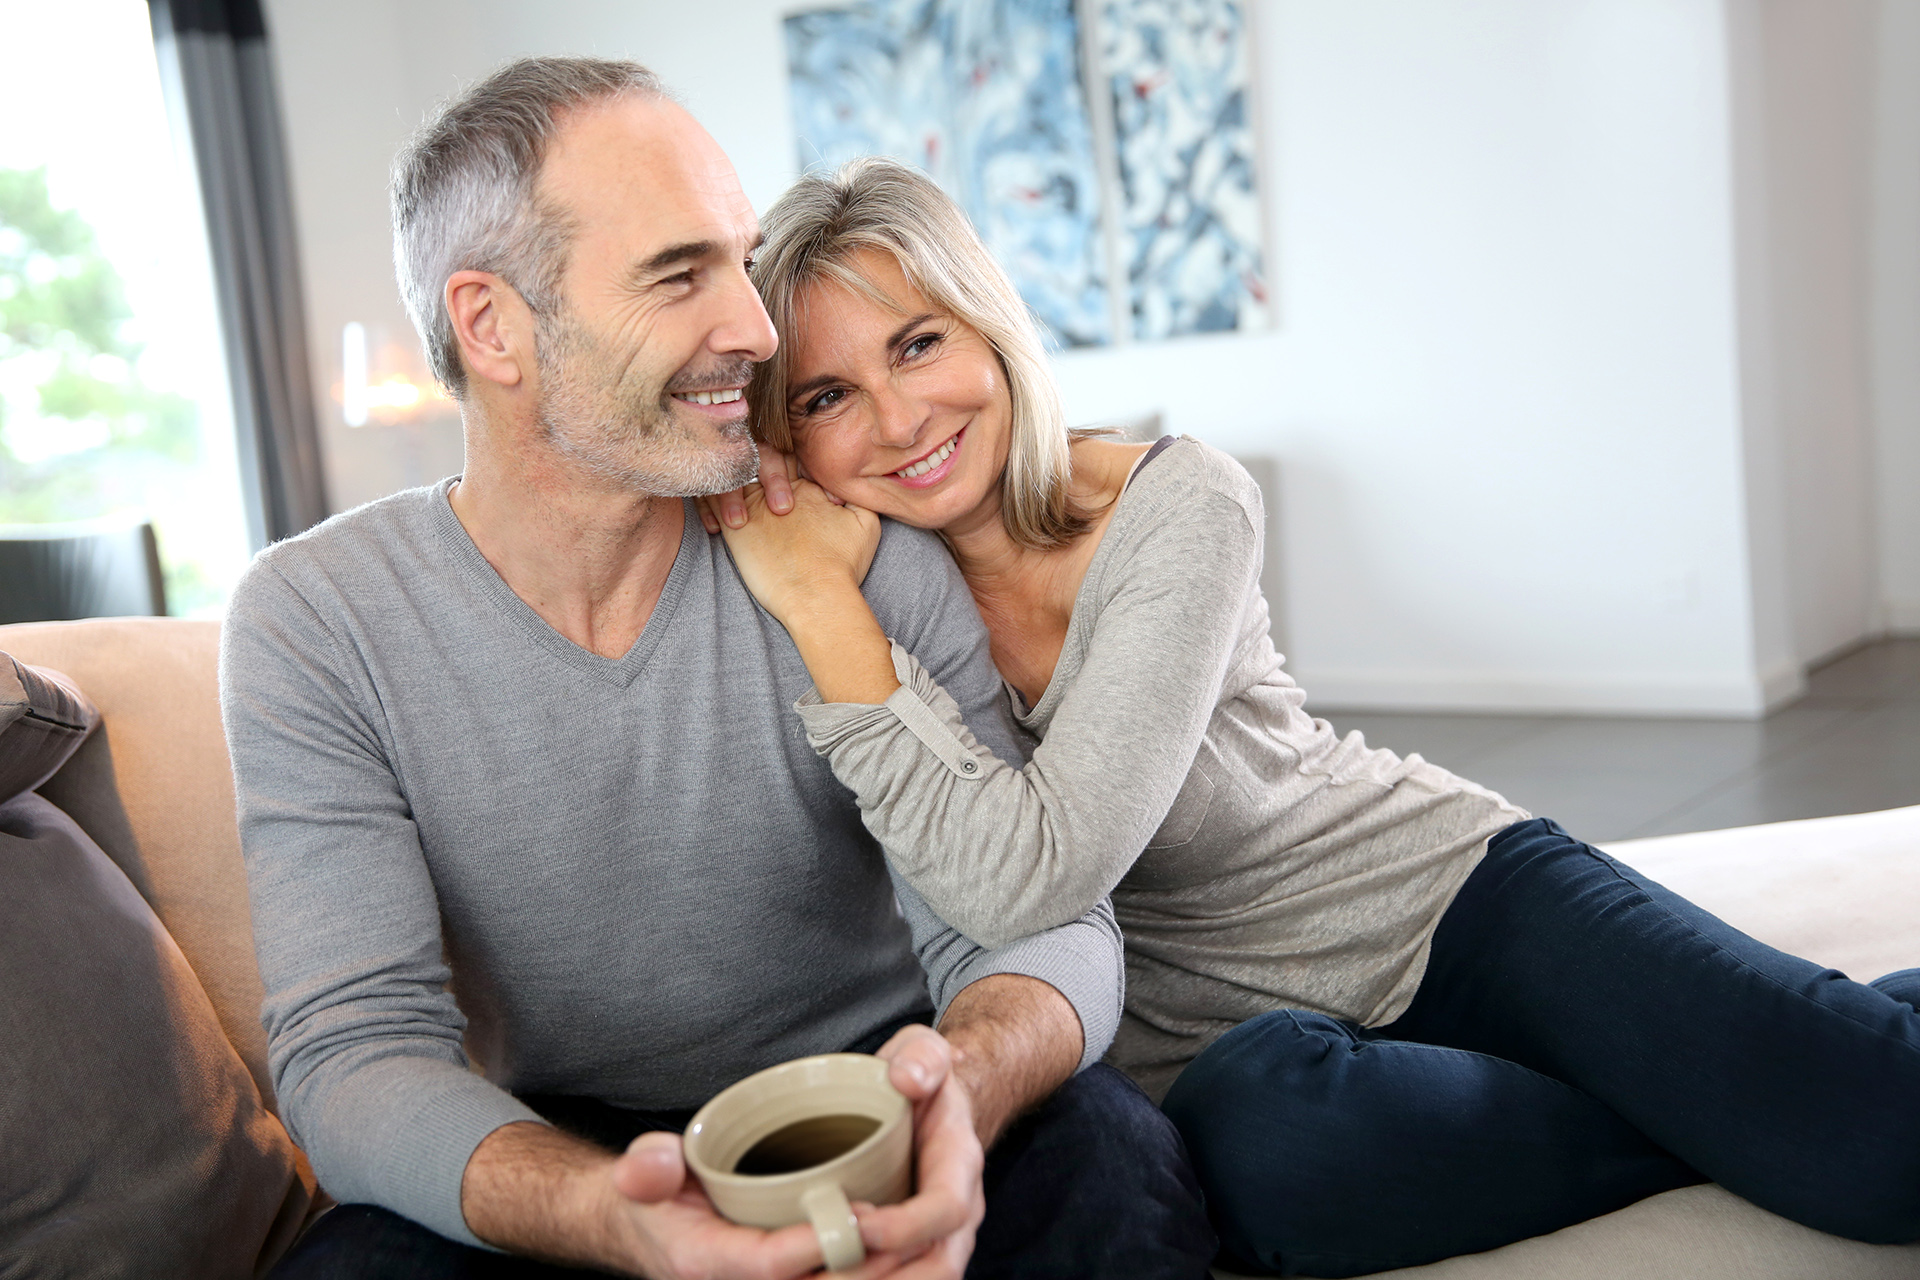 happy-middle-age-couple.jpg